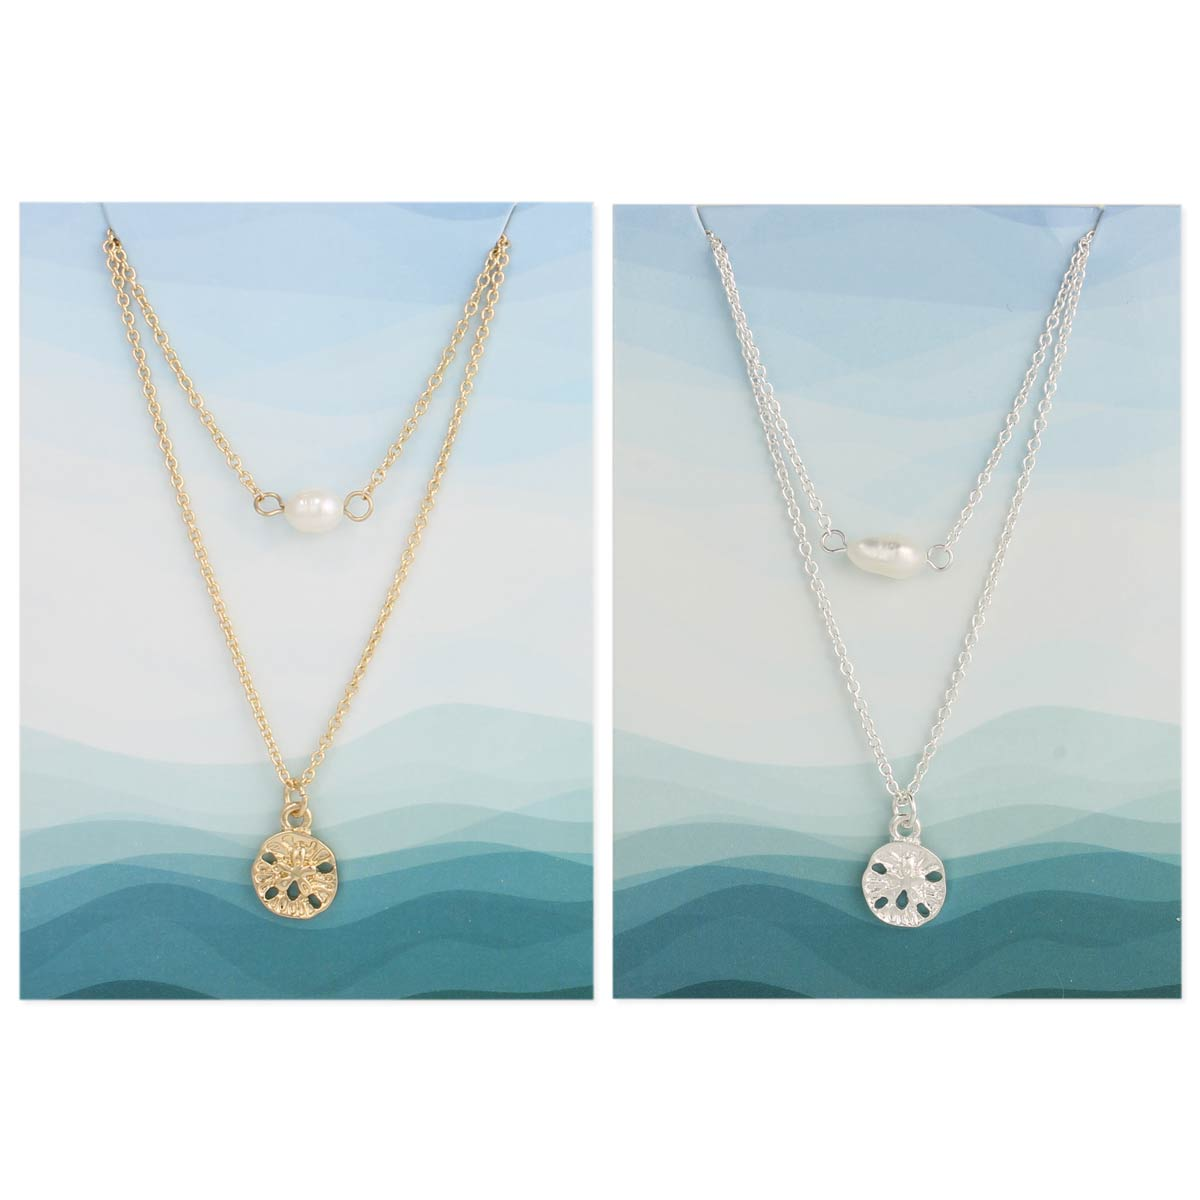 Sandoller & Pearl Layer Necklace